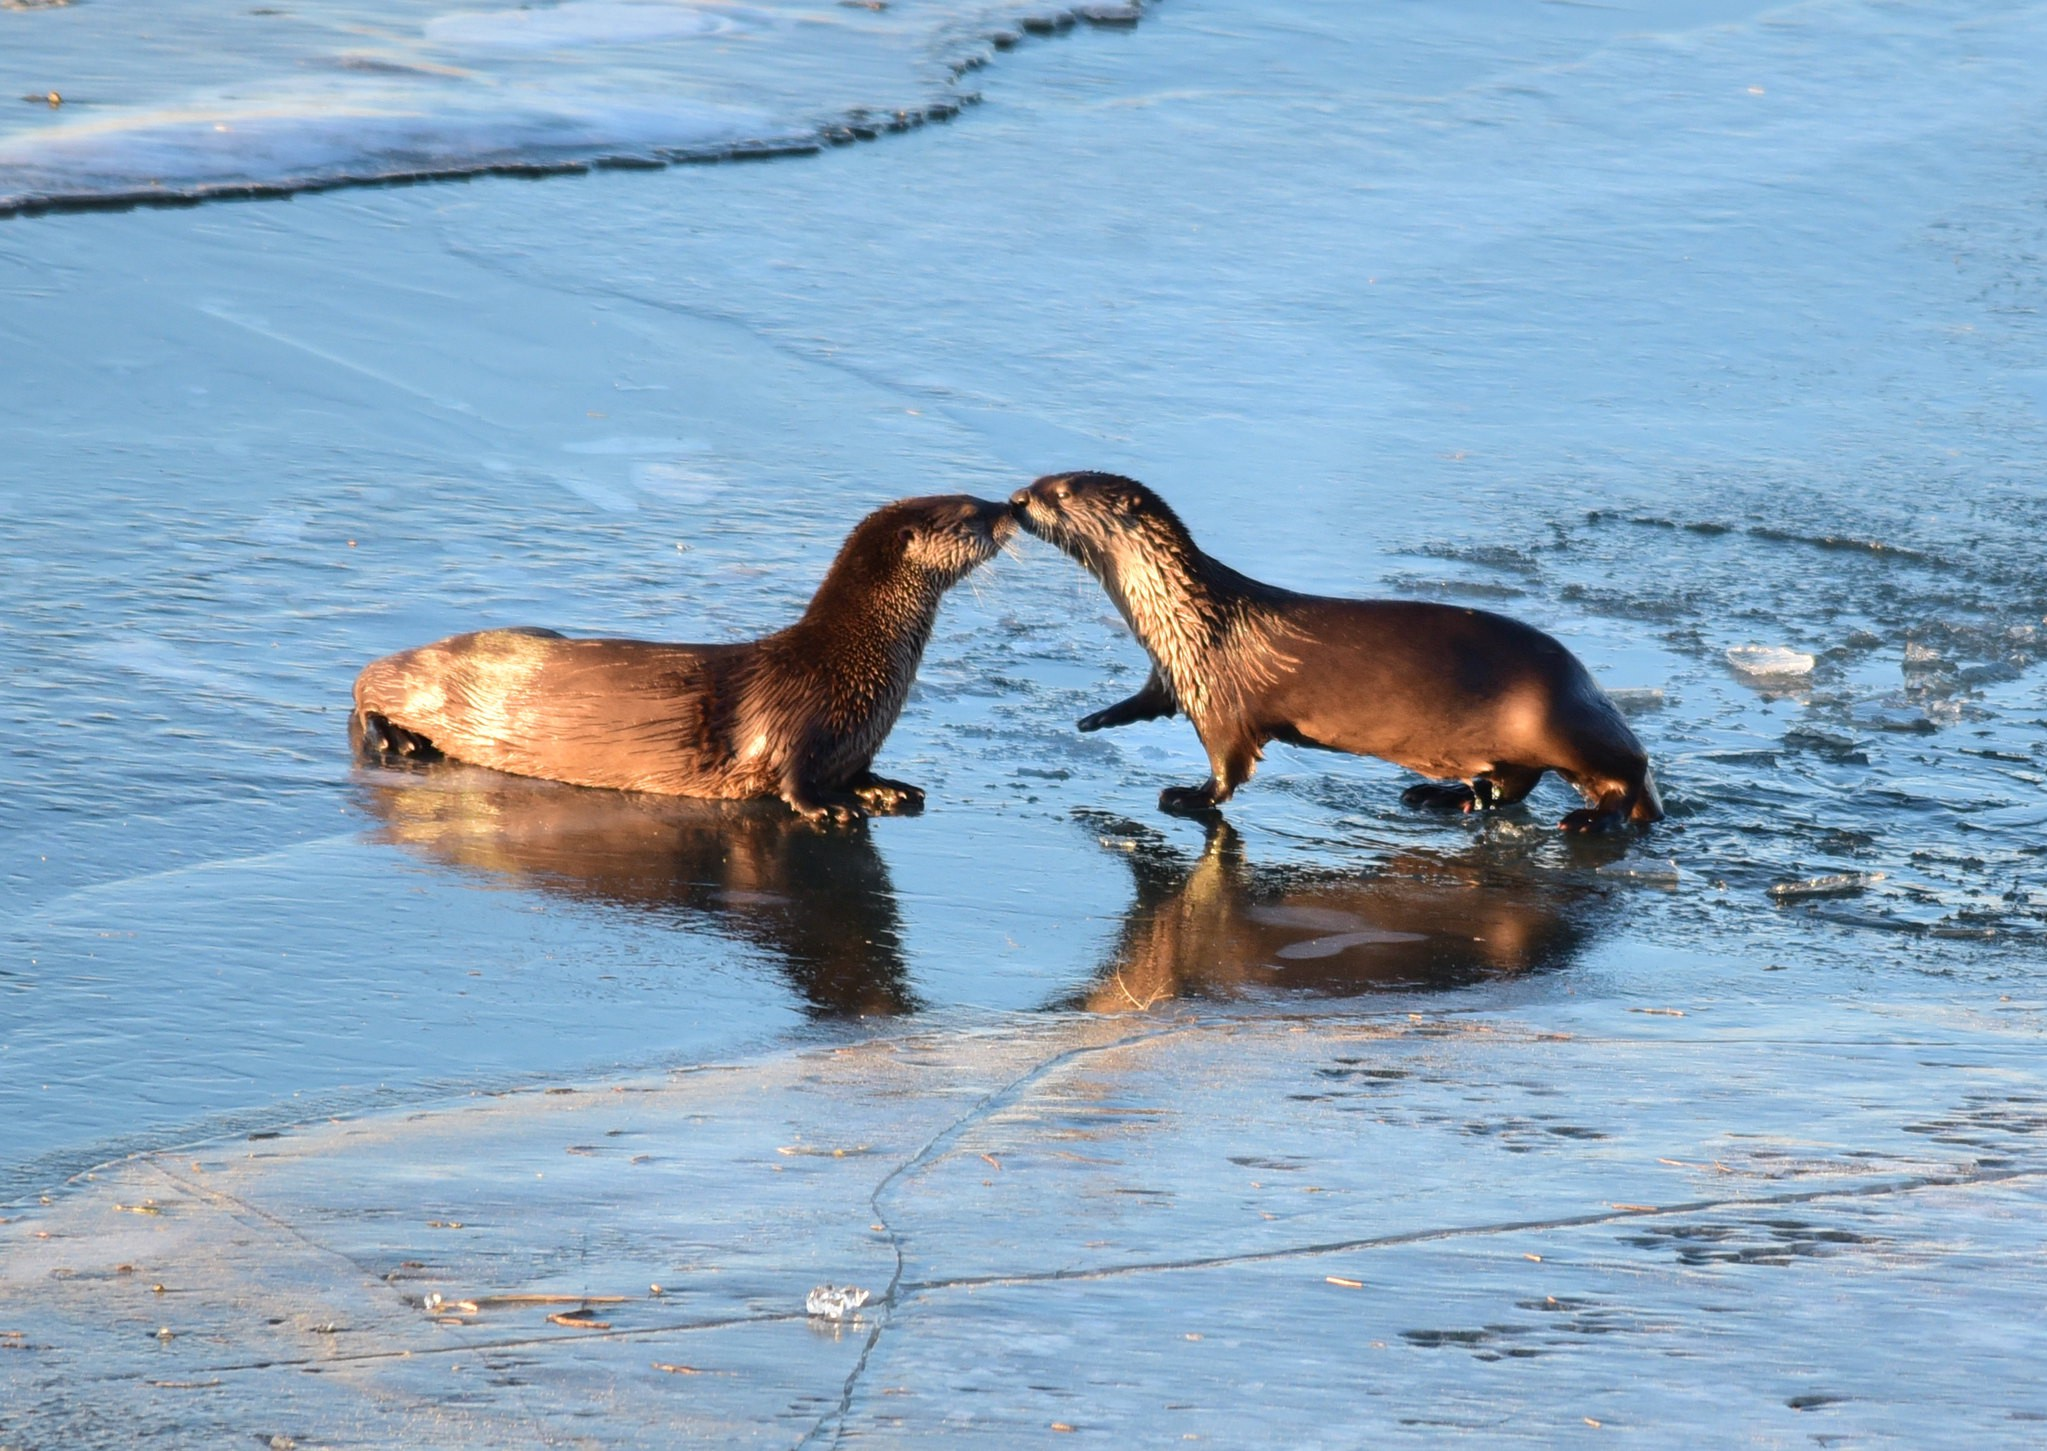 Two North American river otters nuzzling noses on ice